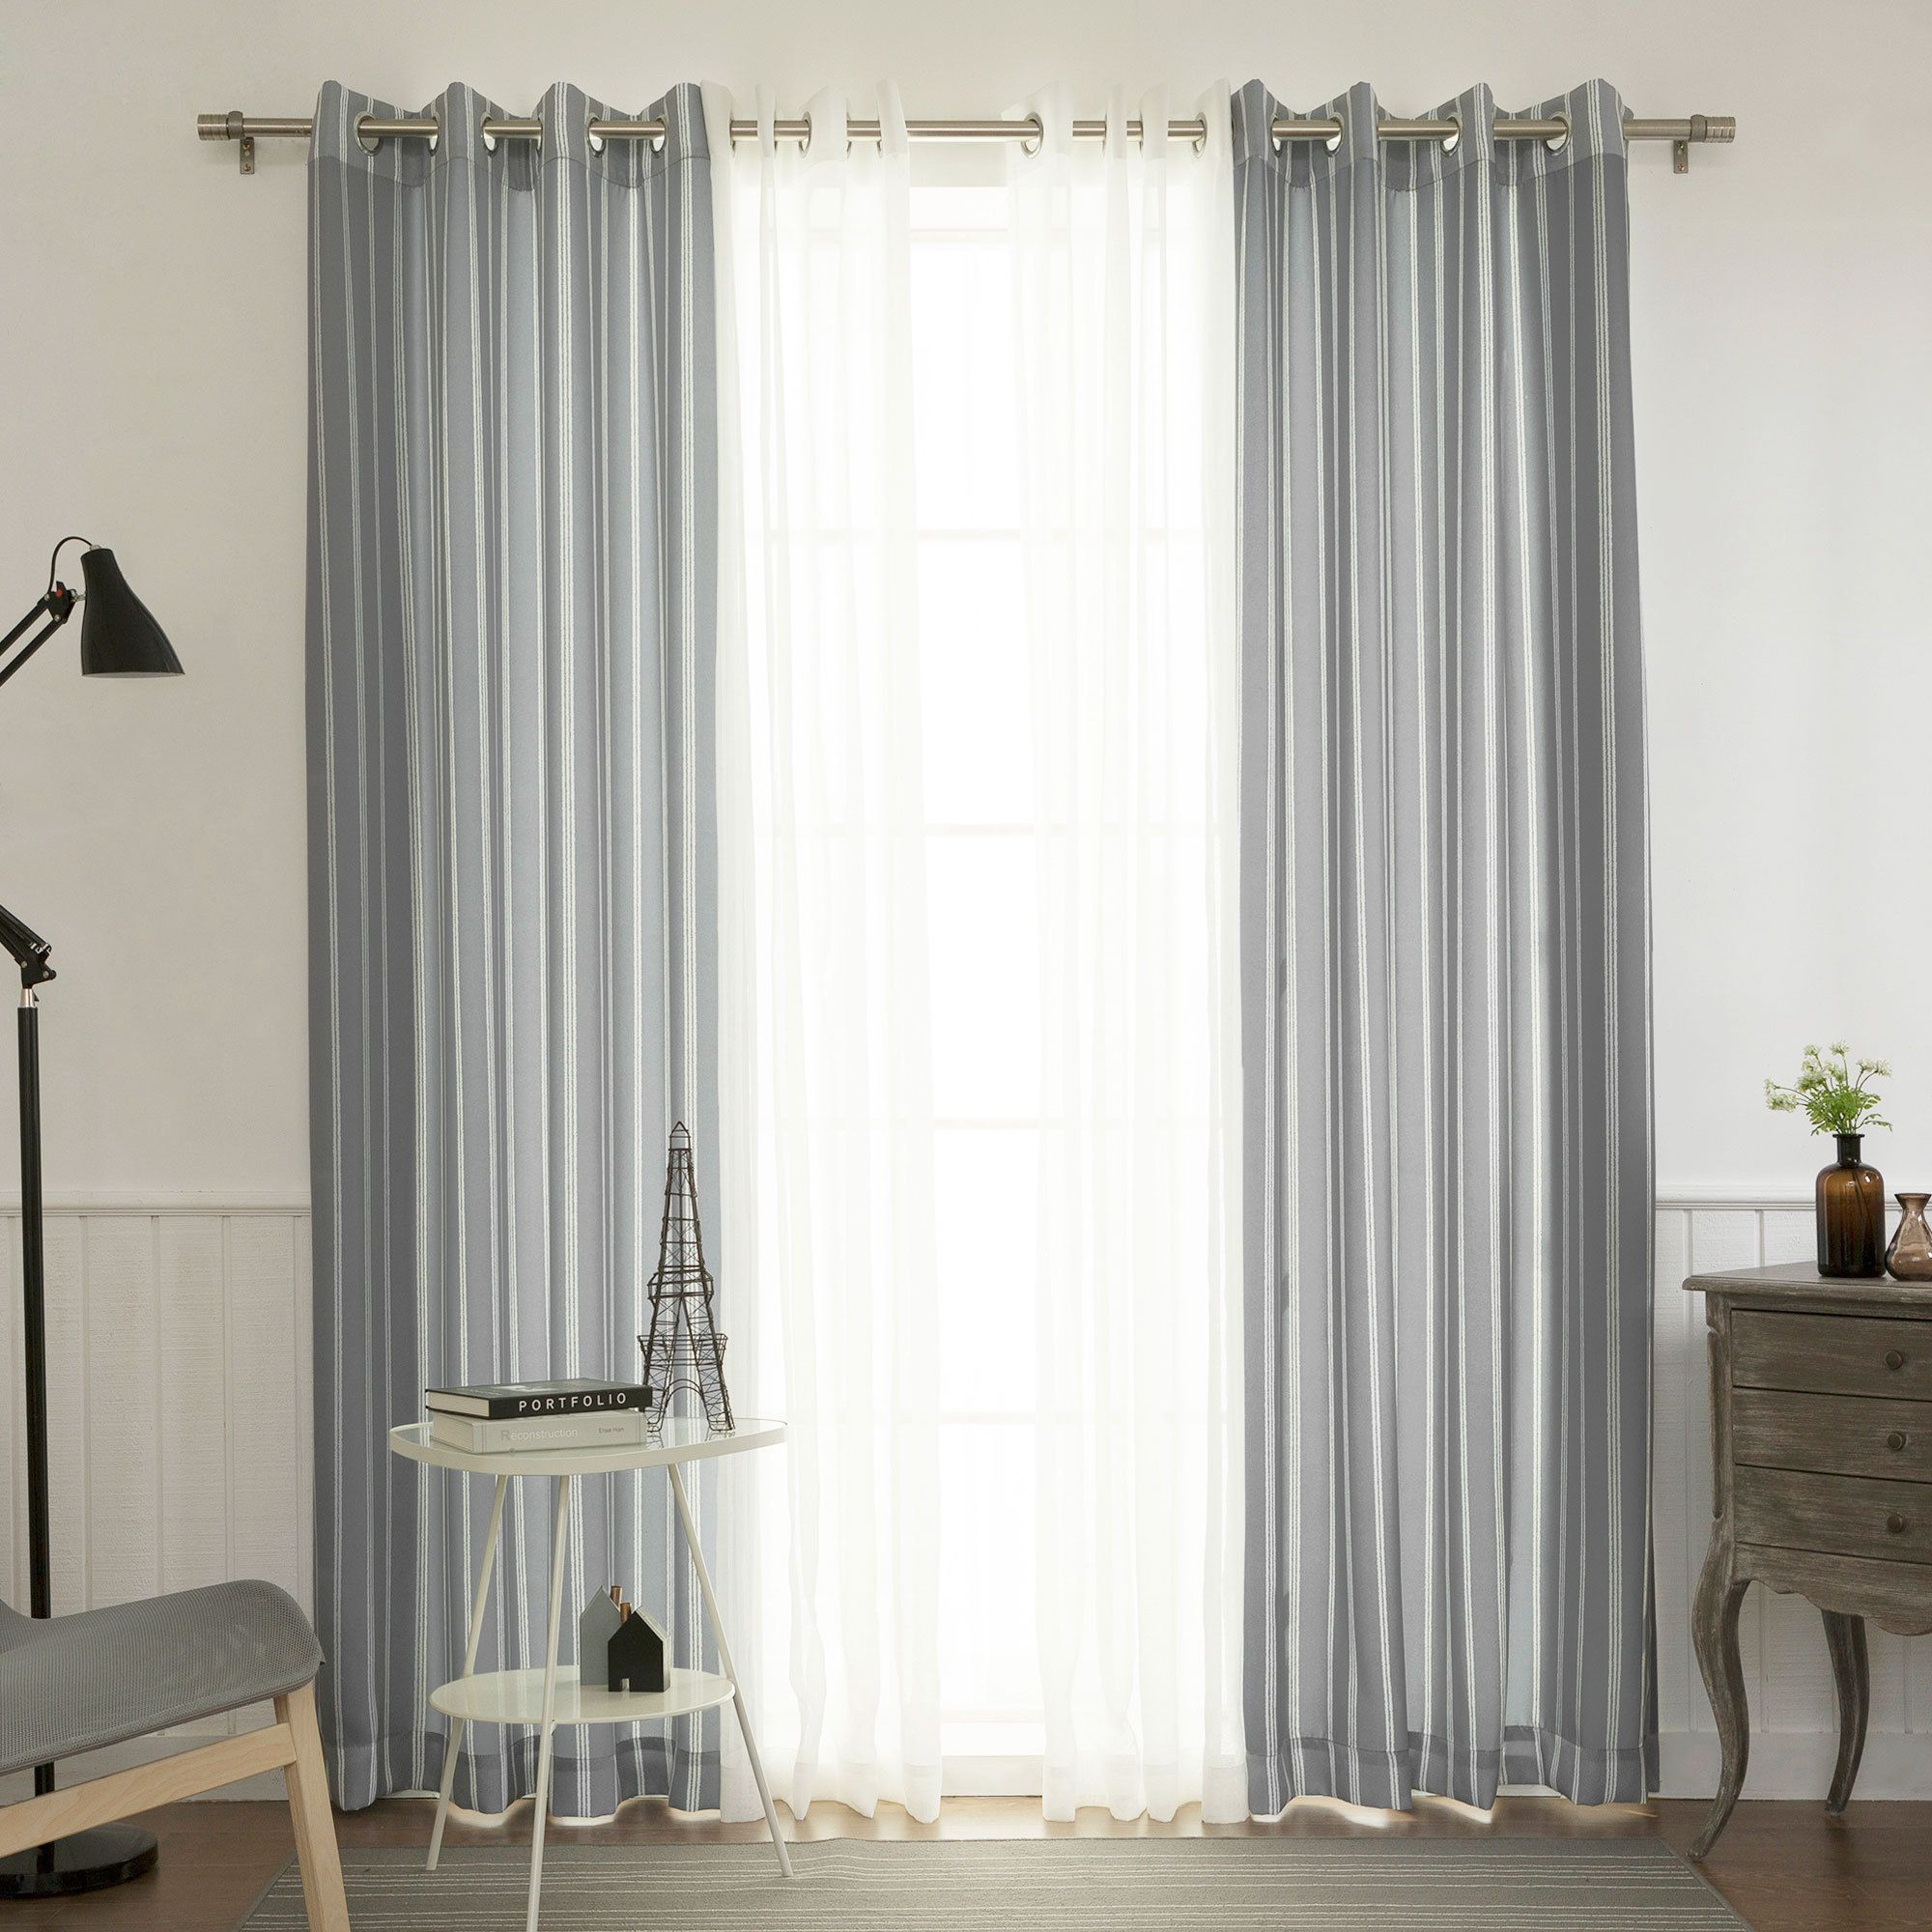 Overstock Com Online Shopping Bedding Furniture Electronics Jewelry Clothing More Curtains Panel Curtains Drapes Curtains